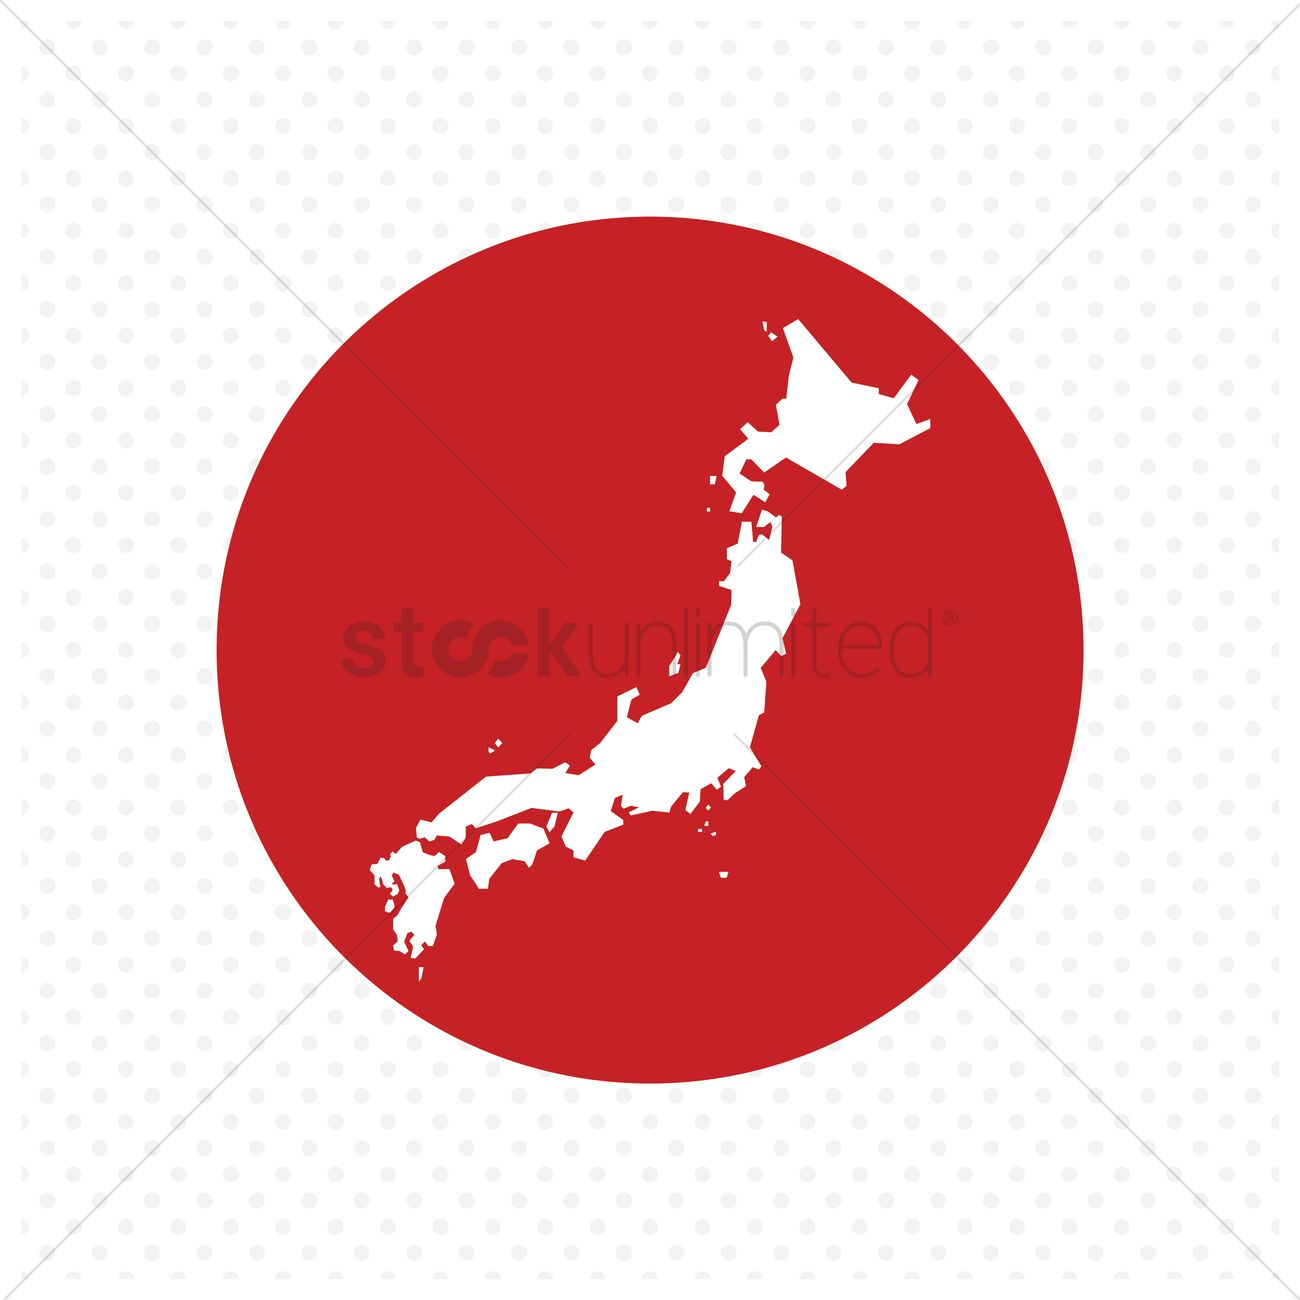 Japan Map Vector Image StockUnlimited - Japan map red